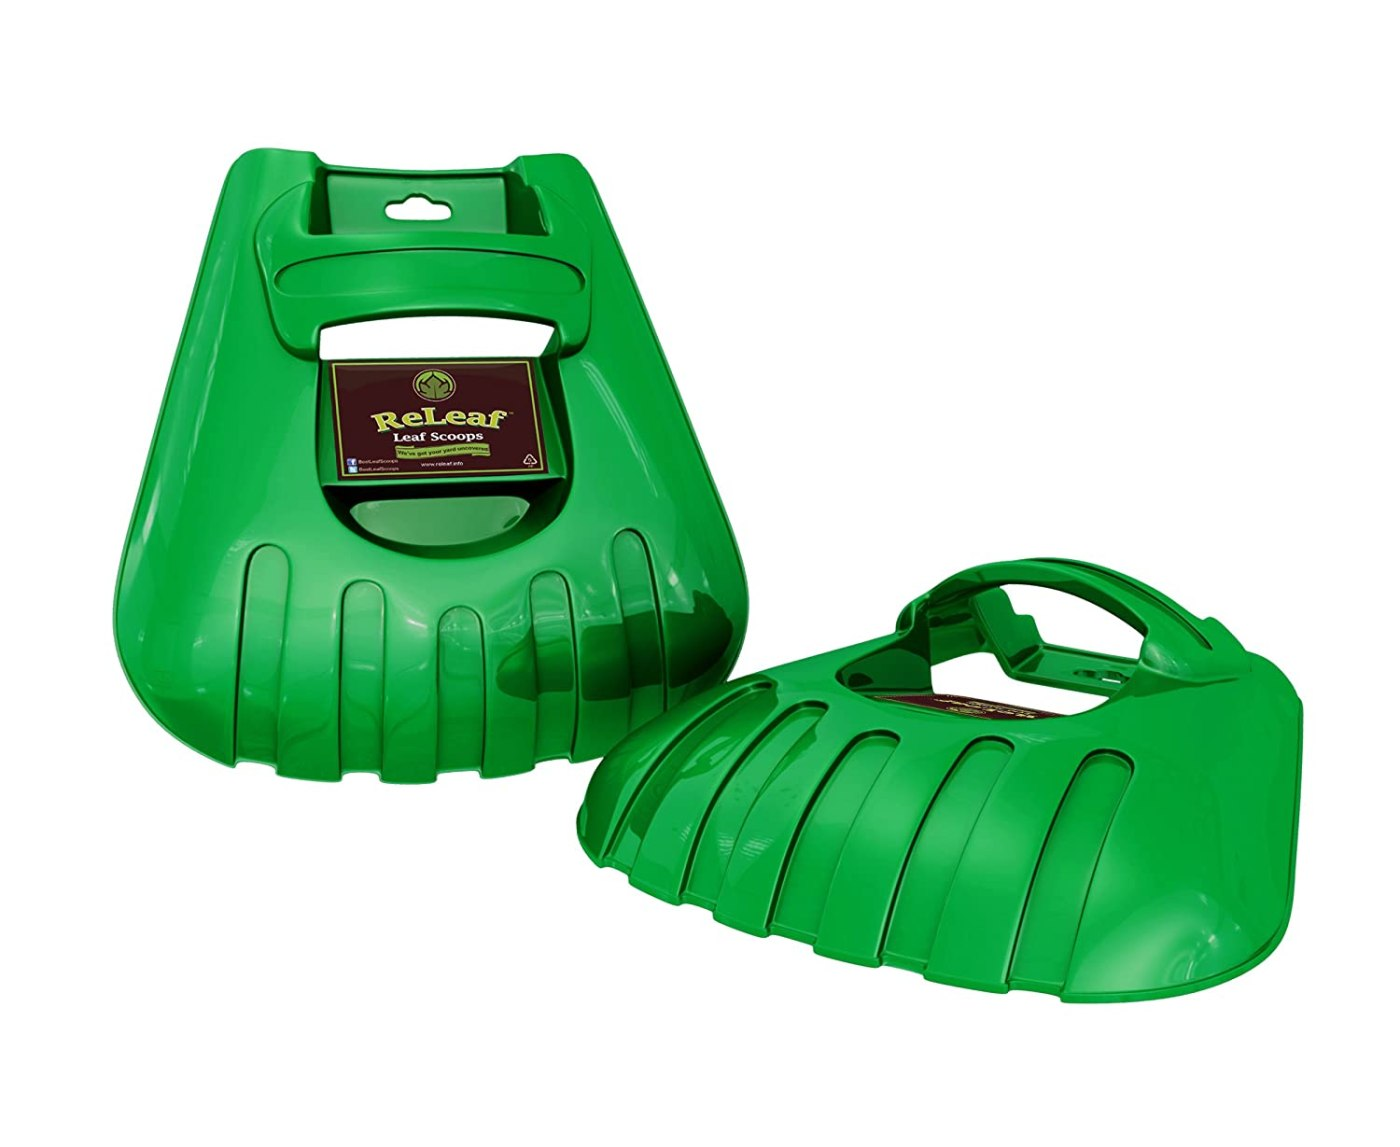 Releaf Leaf Scoops Ergonomic Large Hand Held Rakes Fast Leaf and Lawn Grass Removal Tools Perfect Trash Loaders